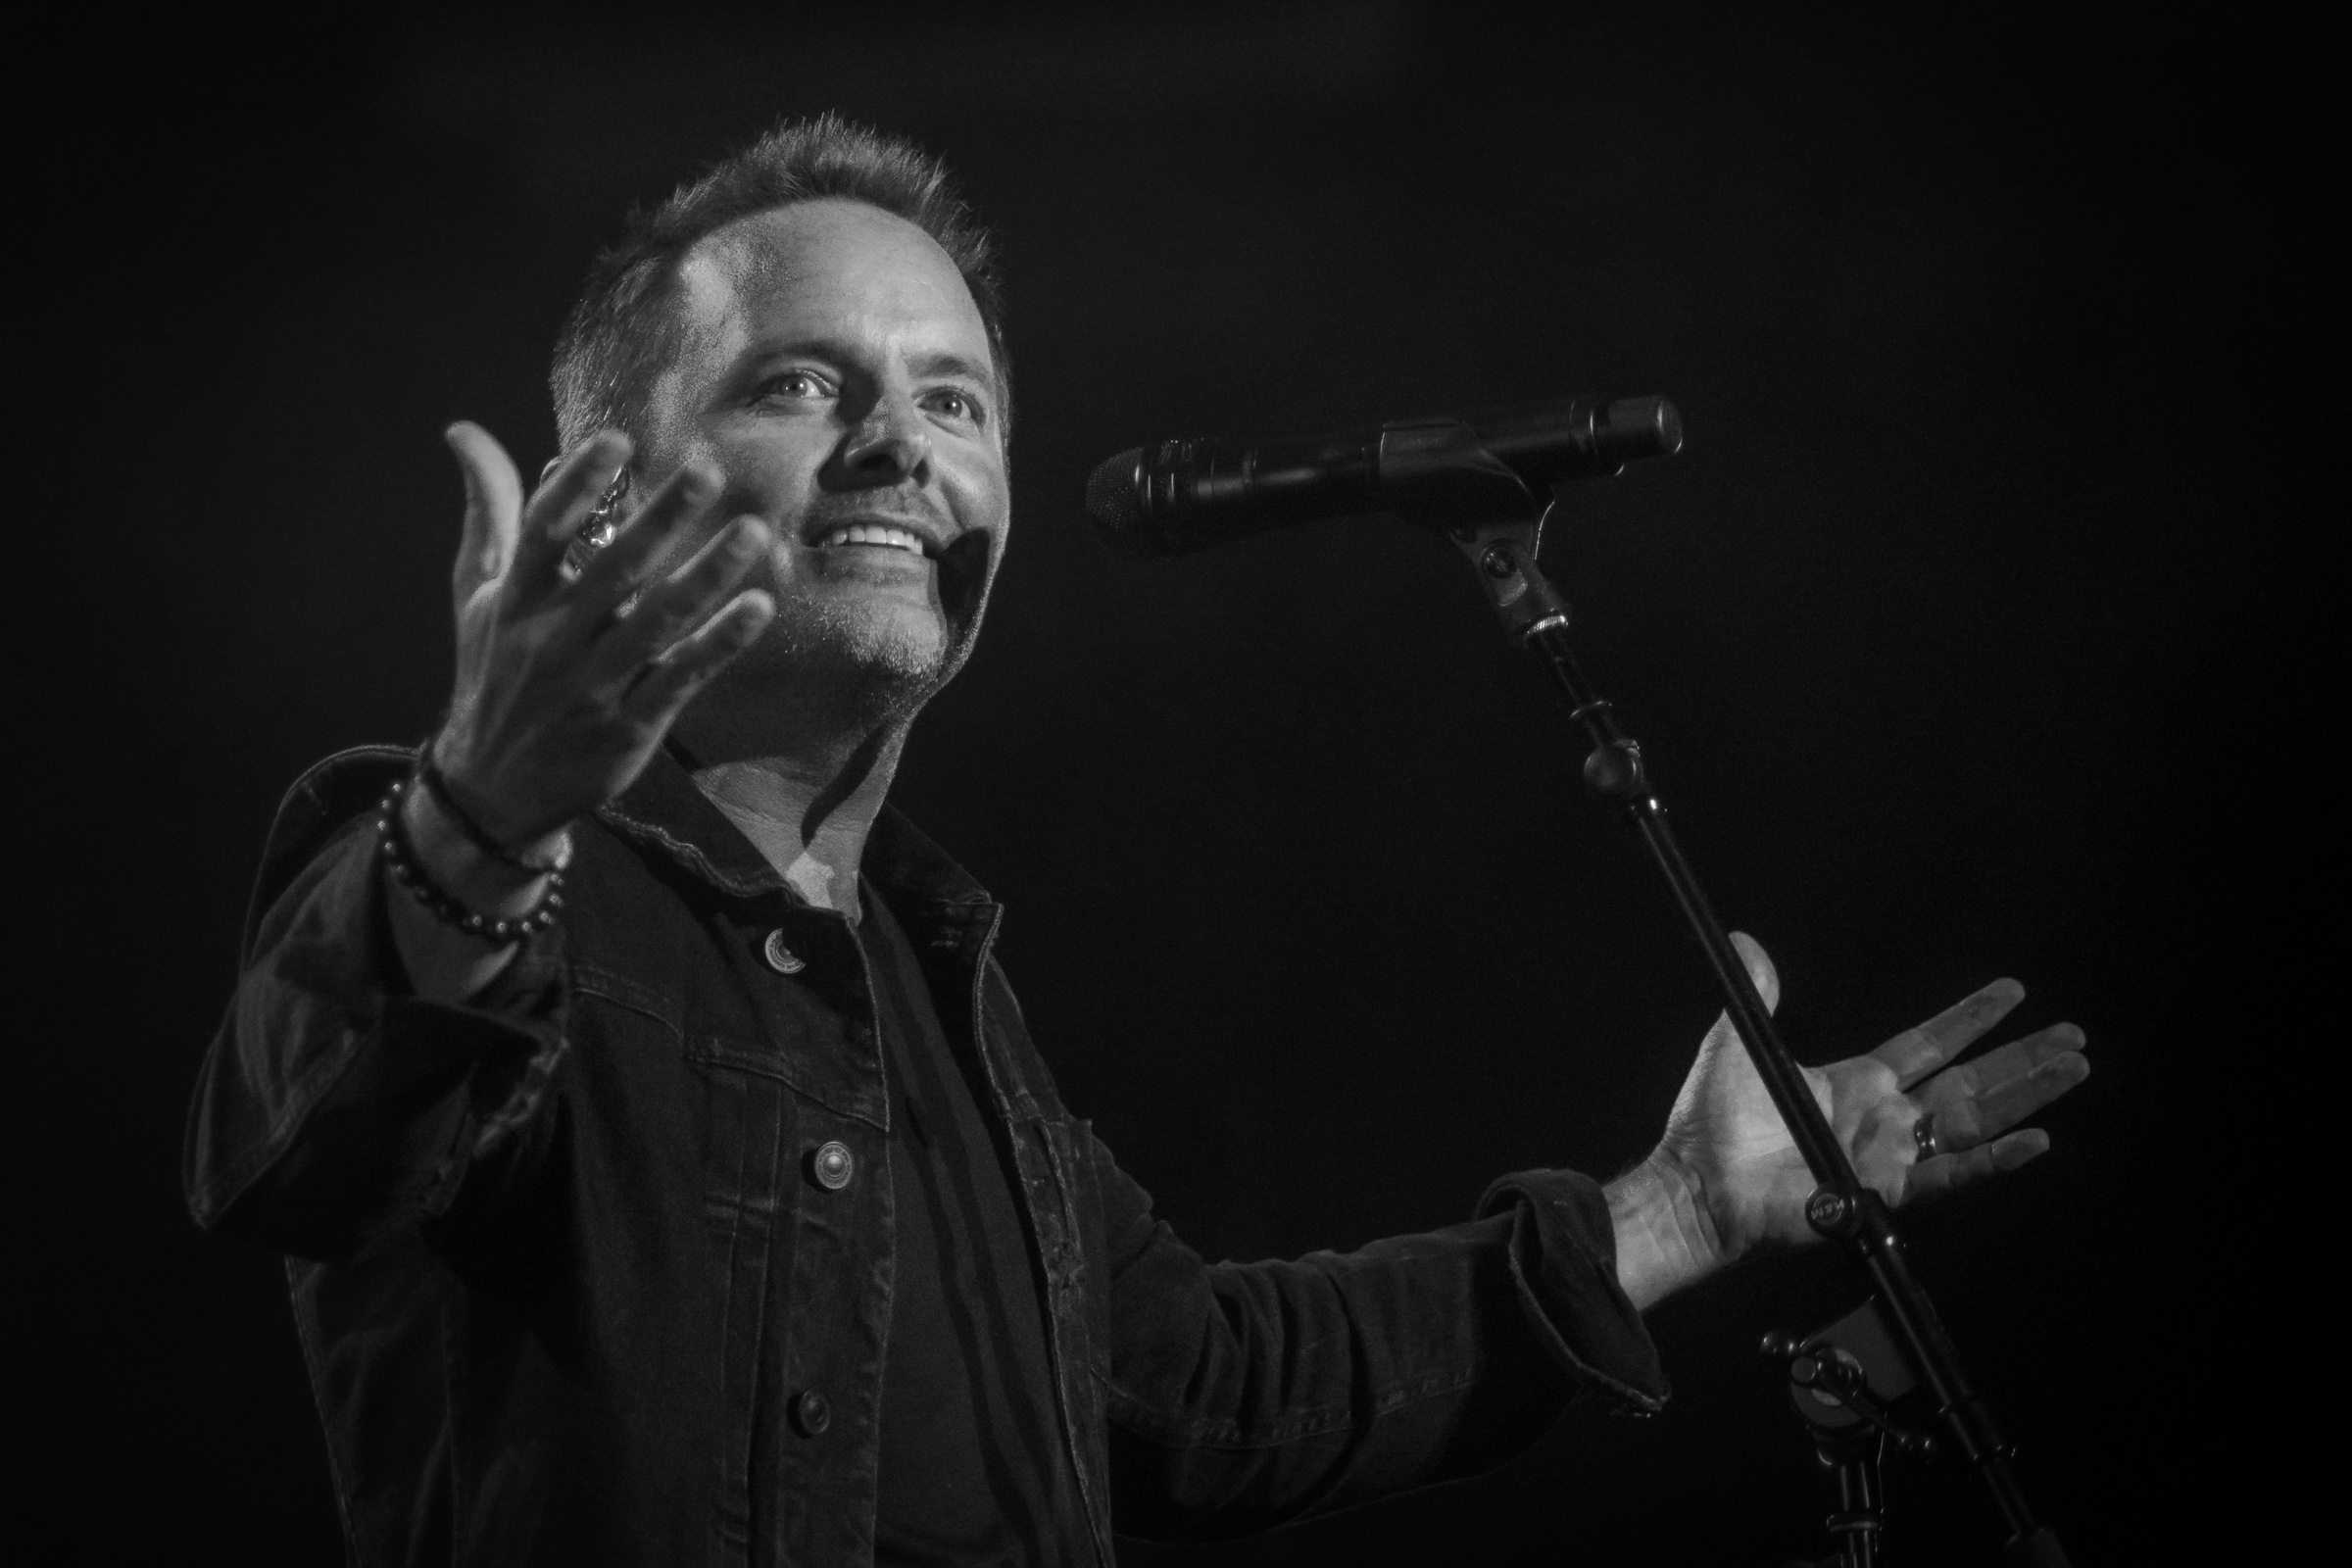 Chris Tomlin at MSG